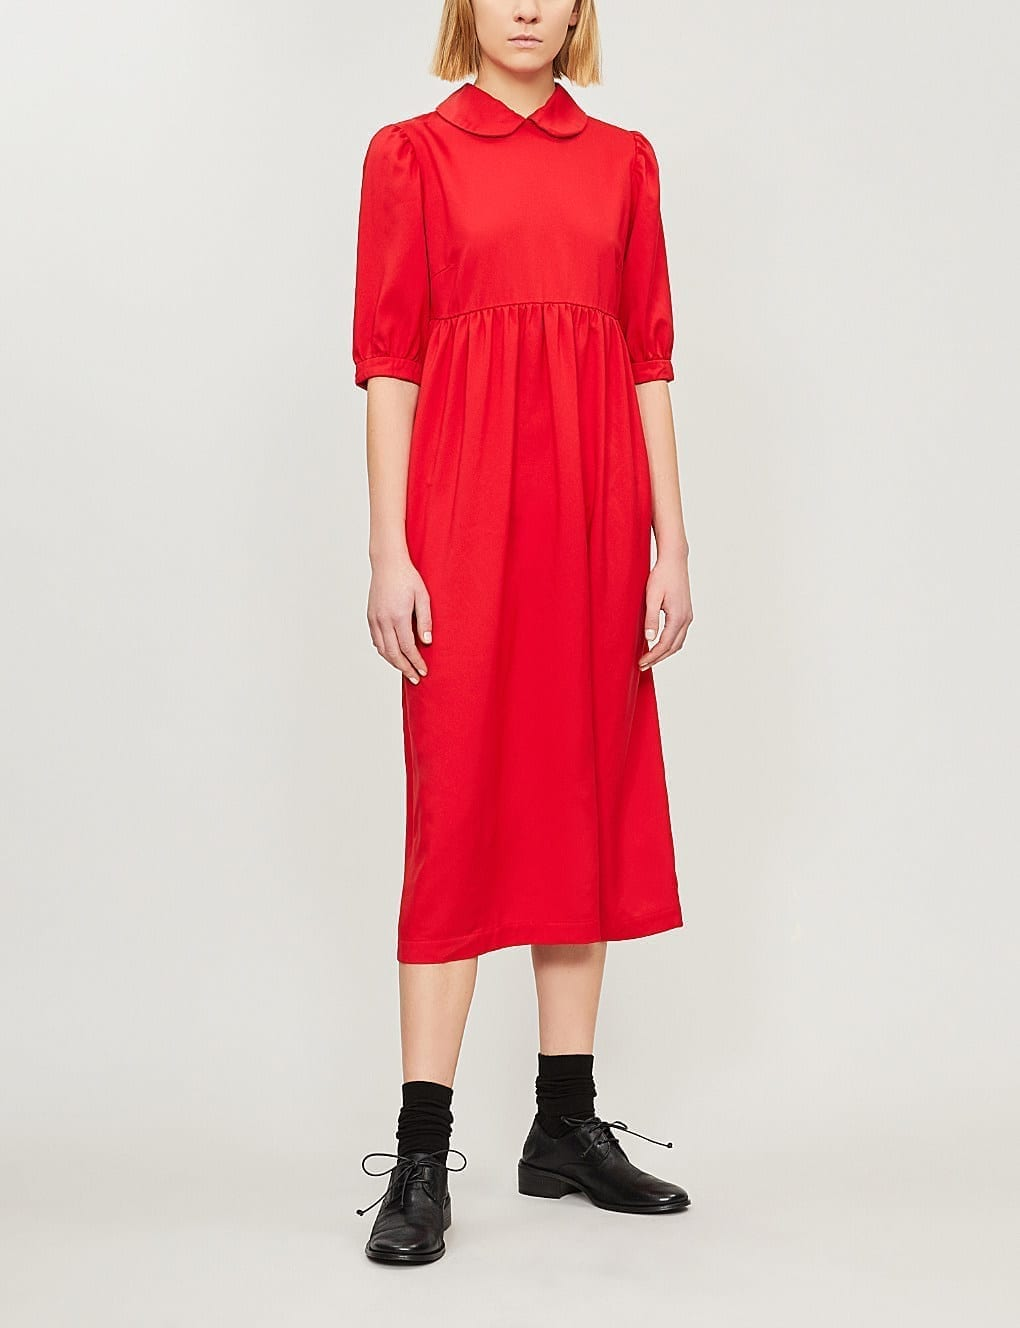 86c4e31d COMME DES GARCONS GIRL Smocked Woven Red Dress - We Select Dresses